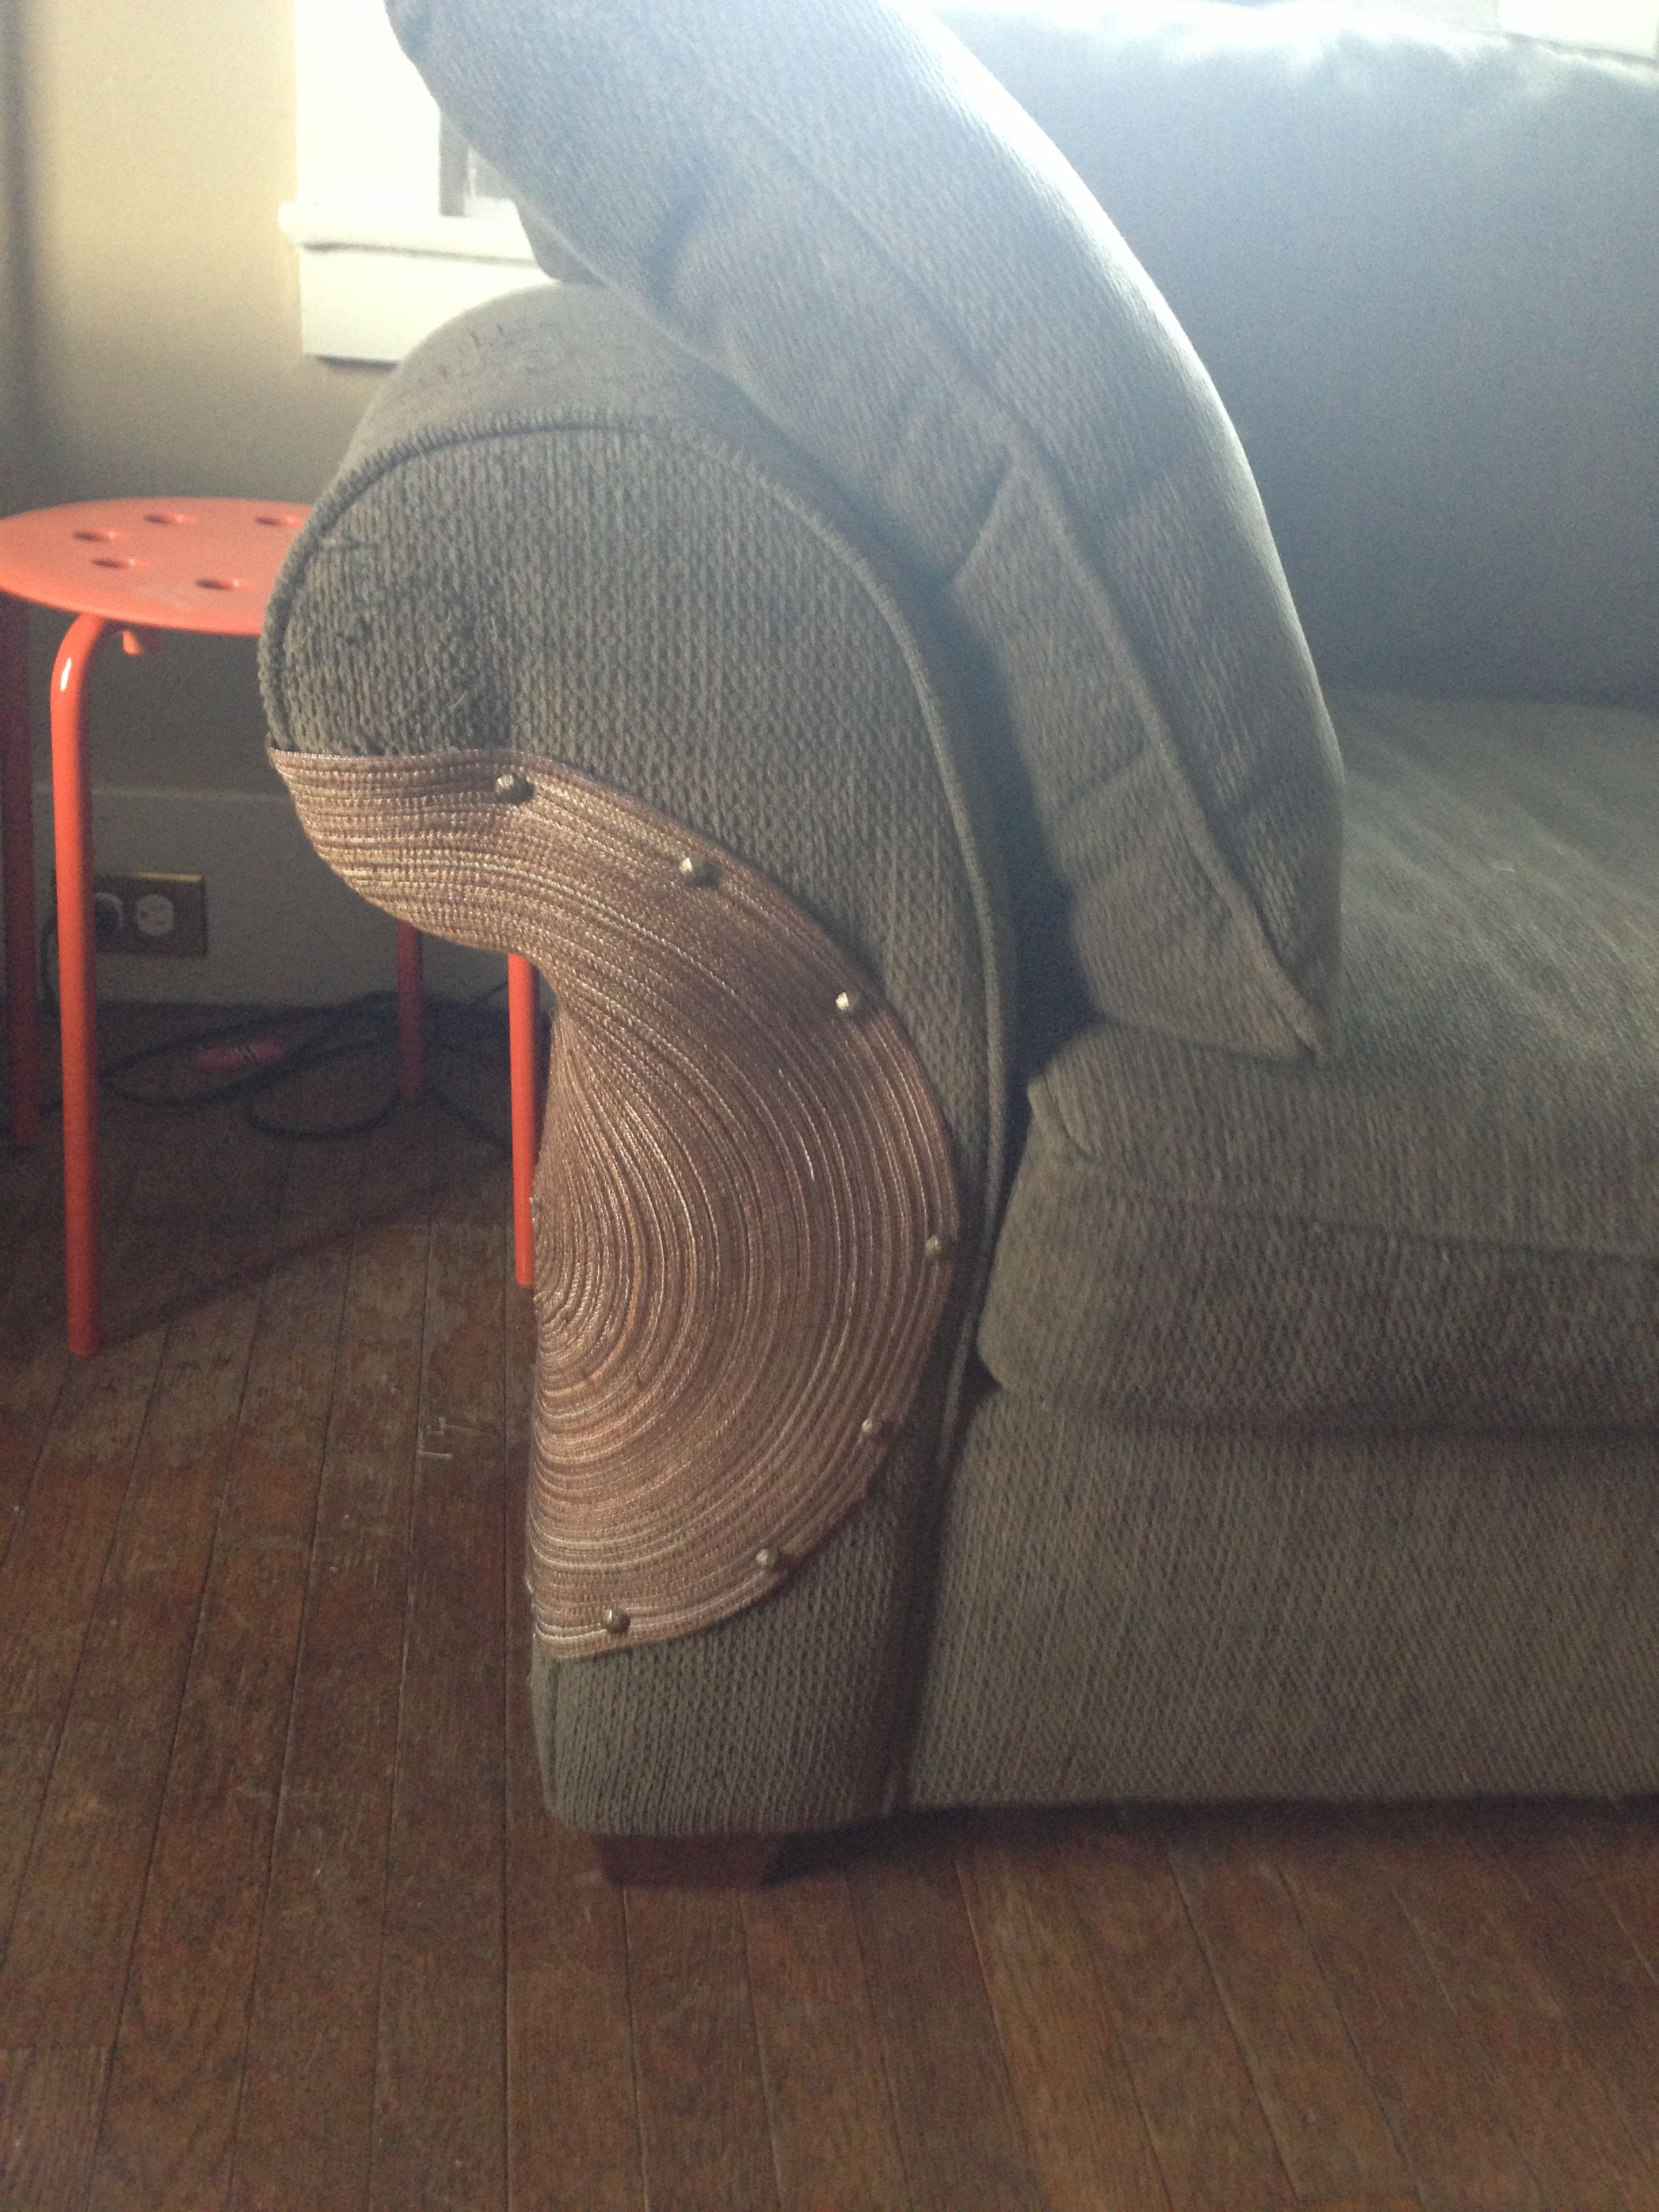 Best Sofa For Cats Owners Chesterfield Bed Solution To The Cat Scratch Holes In Corners Of